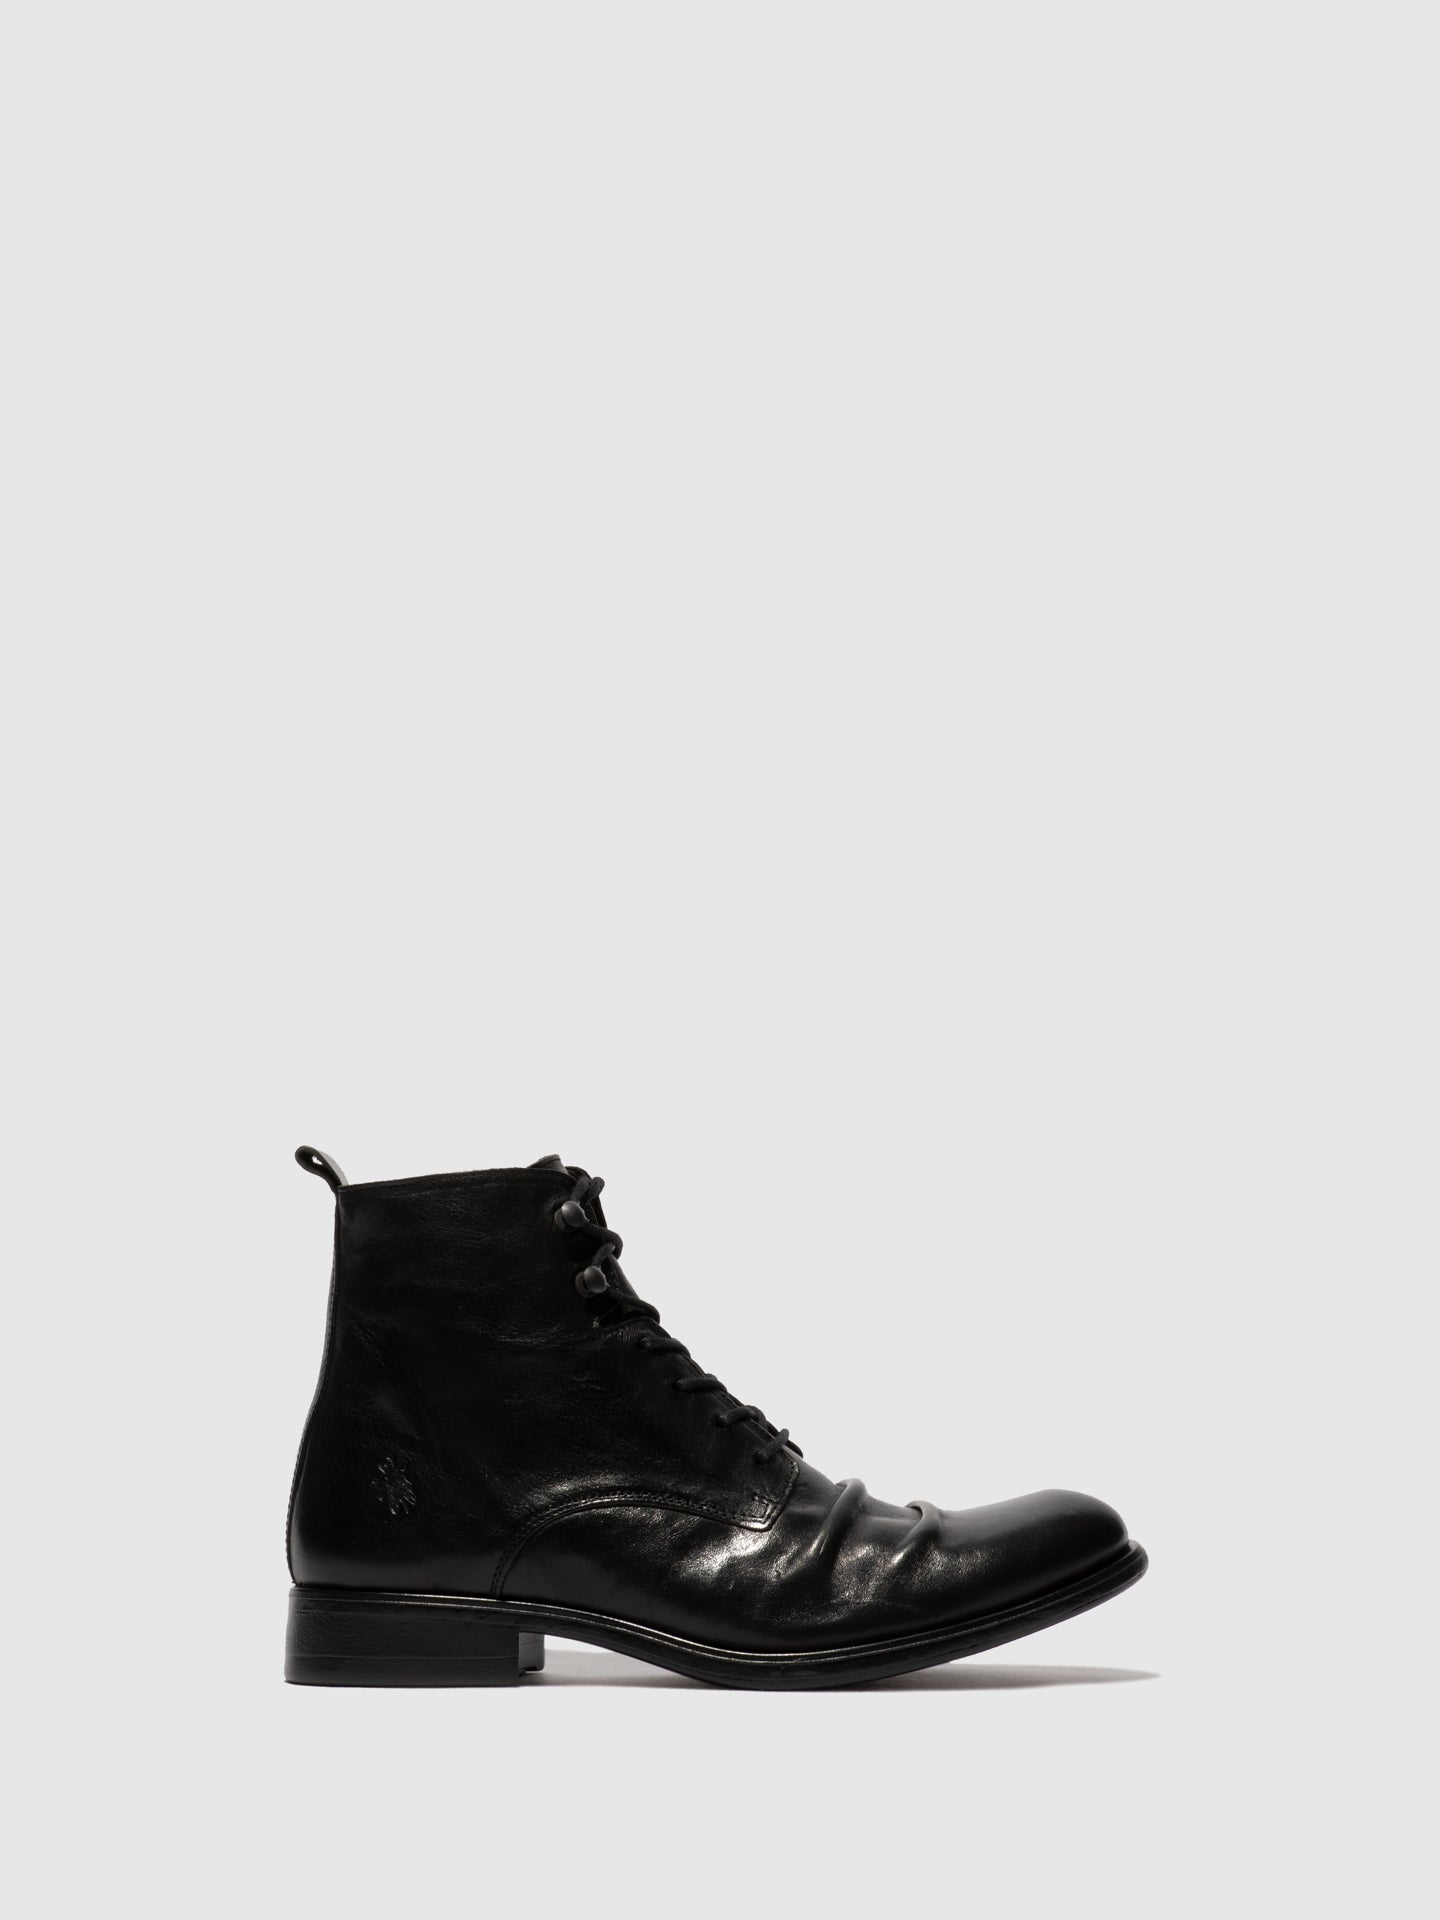 Fly London Lace-up Ankle Boots MYKE660FLY ESTIGMA(VEGETAL) BLACK